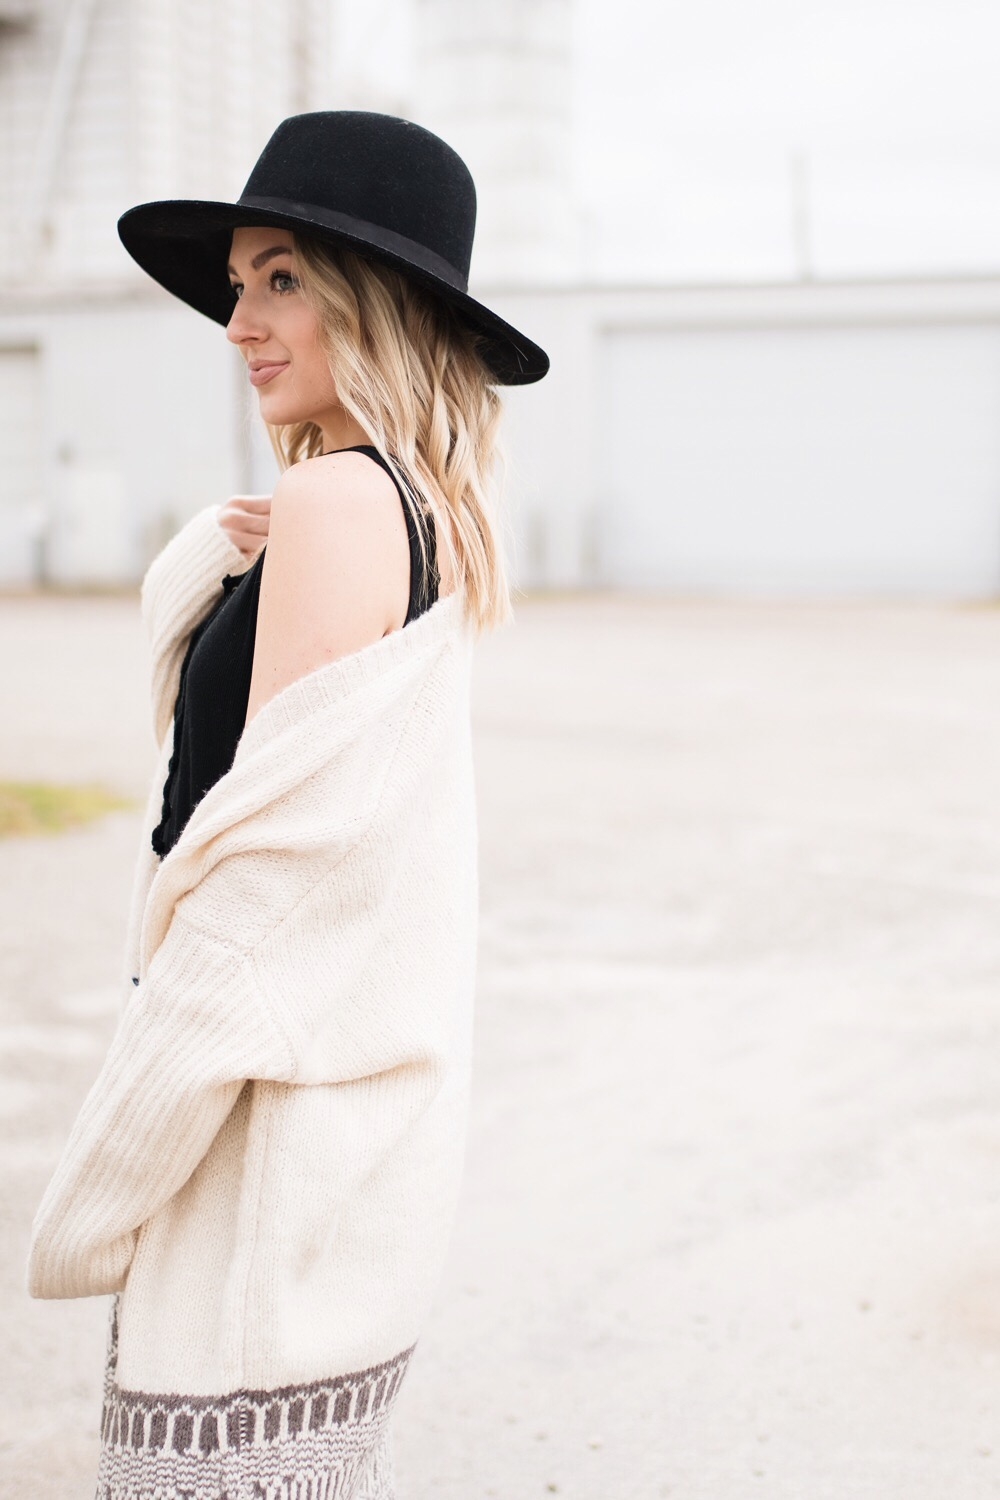 Cream cardigan, black wide brim hat